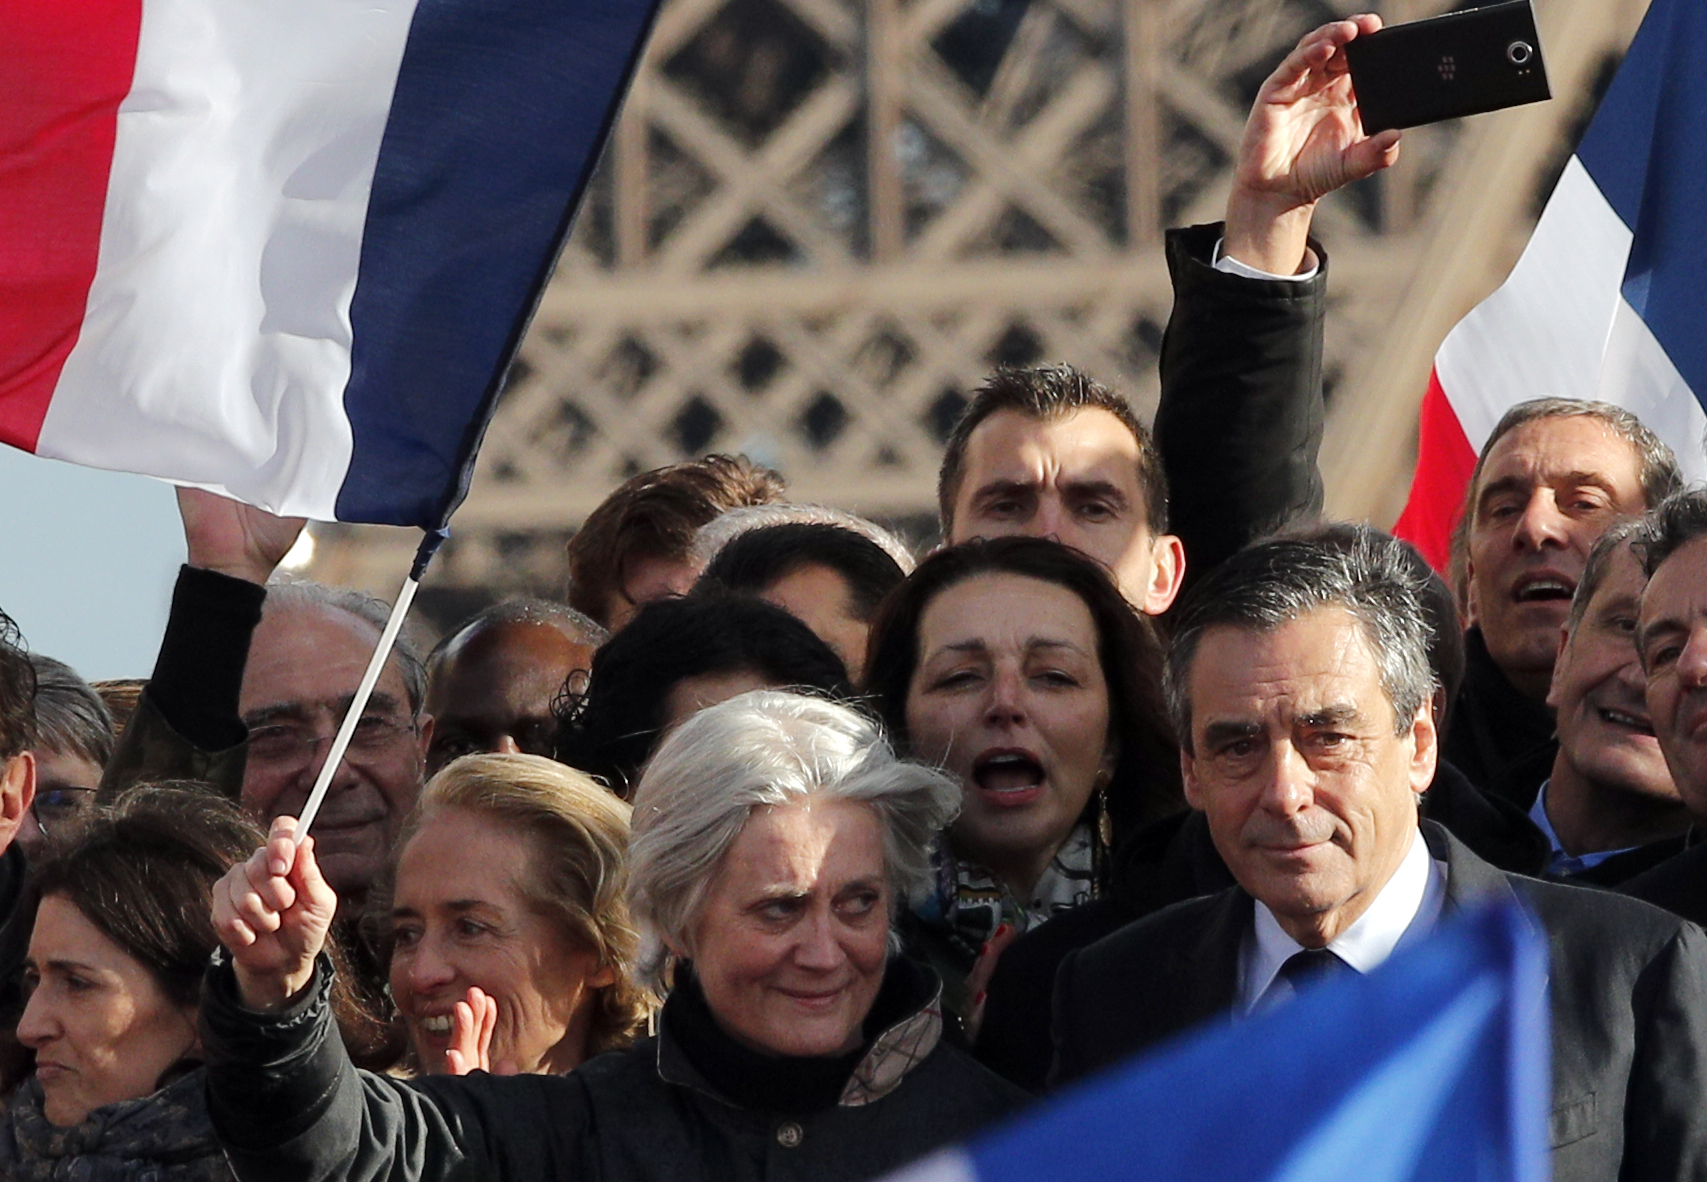 French conservative presidential candidate Francois Fillon and his wife Penelope appear during a rally in Paris on March 5, 2017. (AP Photo/Christophe Ena)